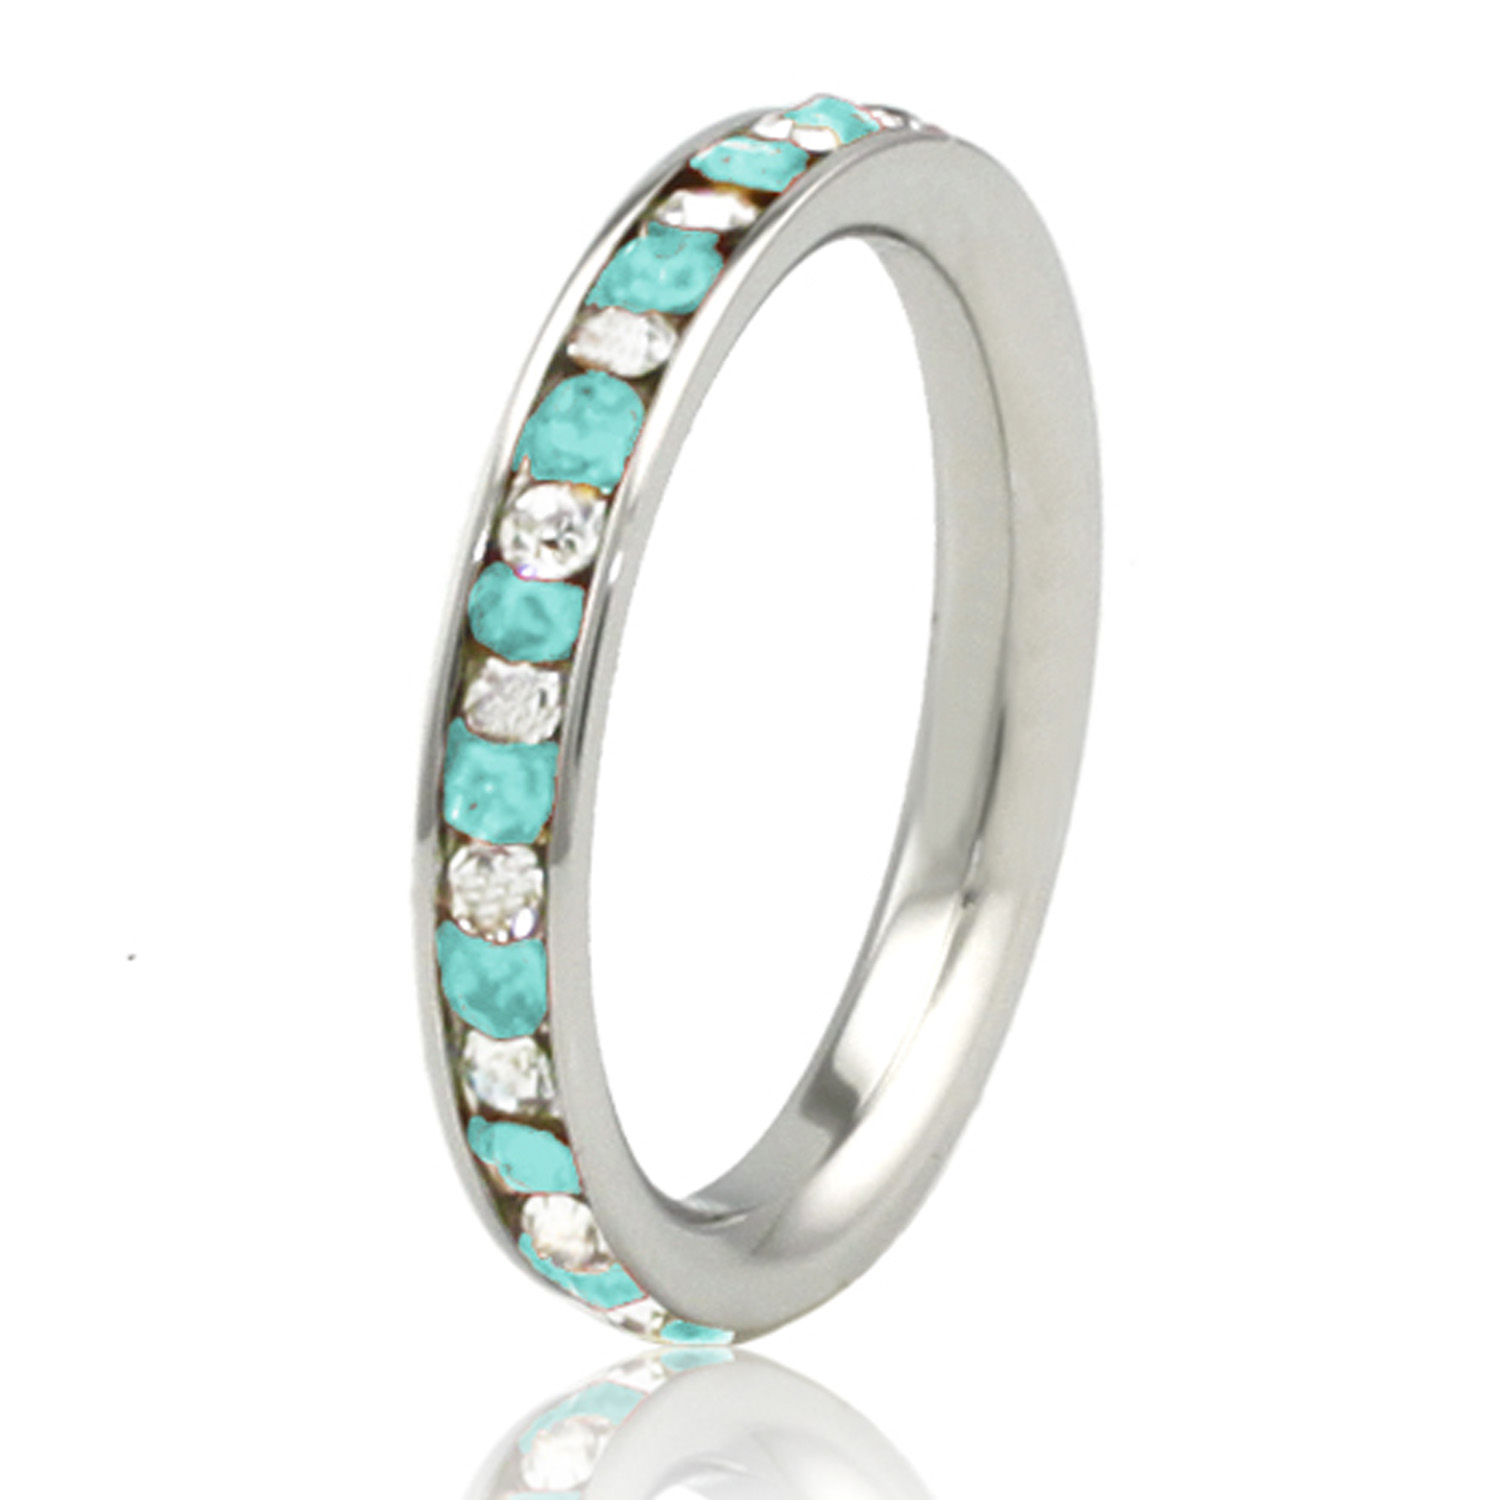 3mm Stainless Steel Teal AQUAMARINE & White Crystal Channel Eternity Band Stackable Ring